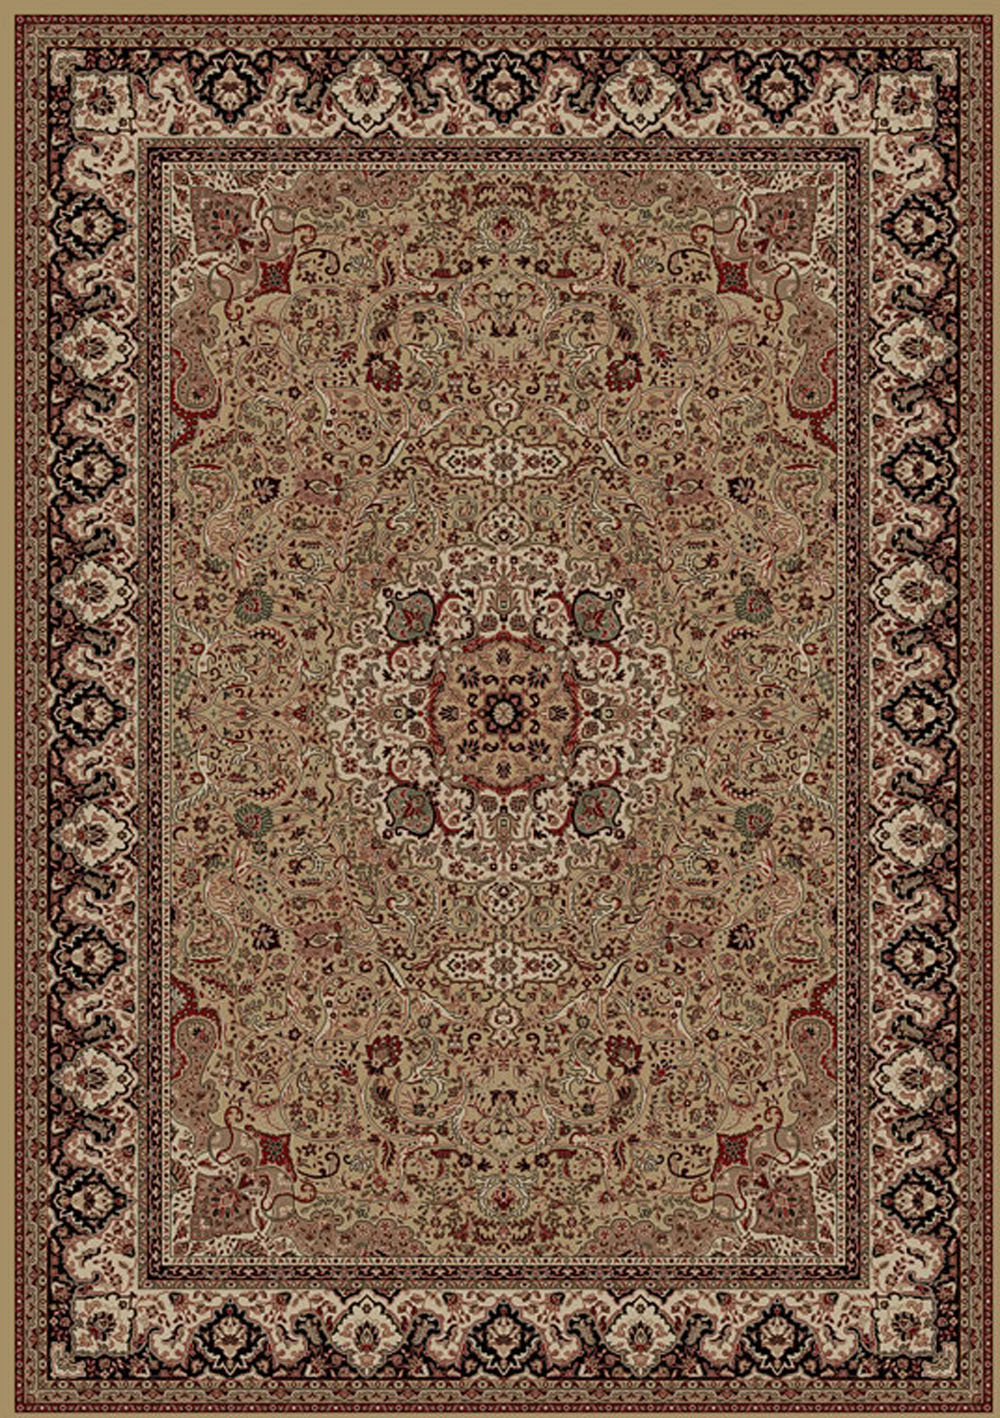 Concord Global Persian Classics ISFAHAN GOLD Rug